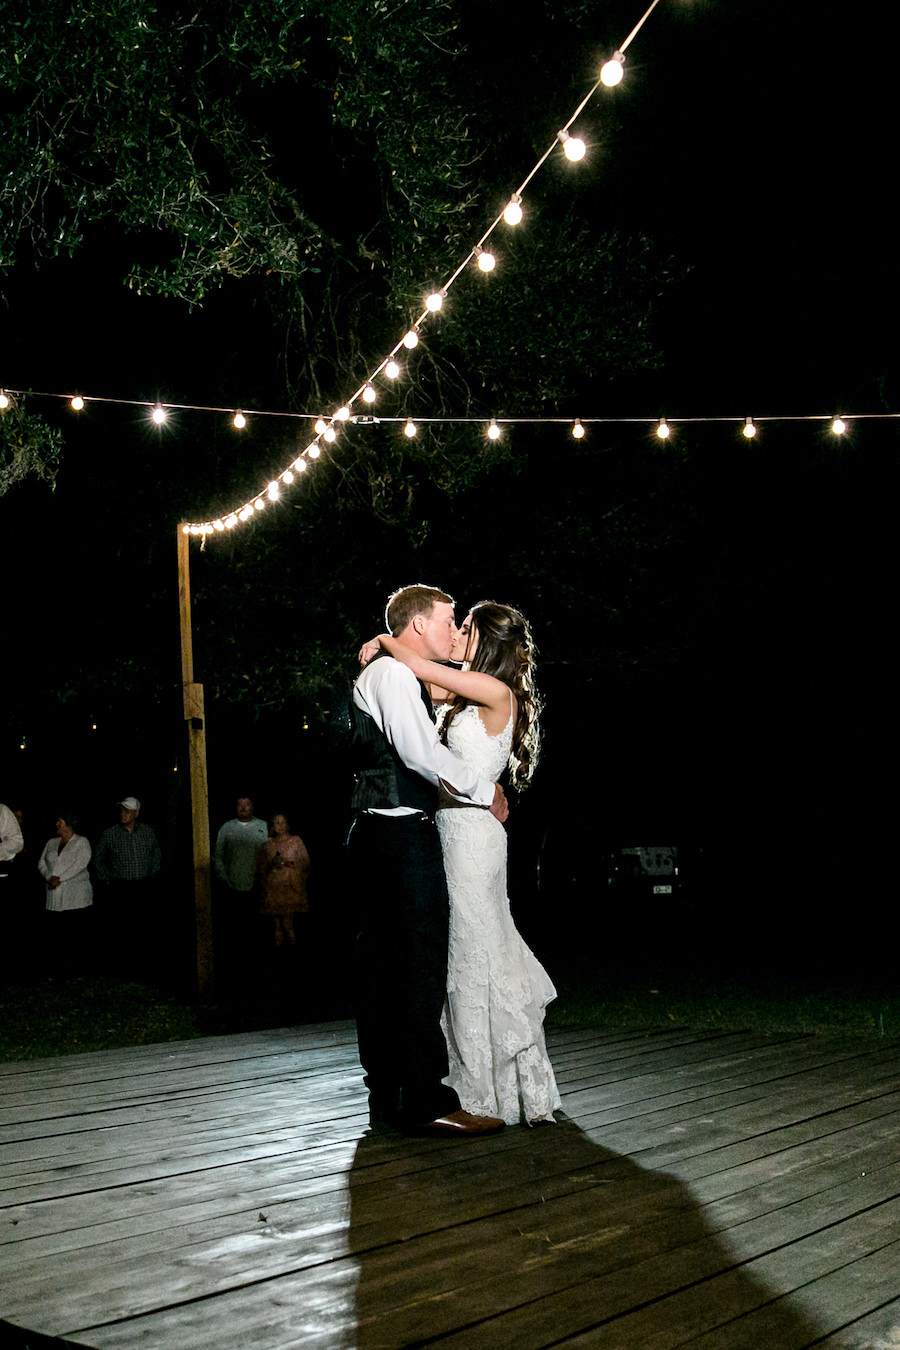 Bride and Groom First Dance at Night with Market Lighting   Outdoor Tampa Bay Wedding Venue